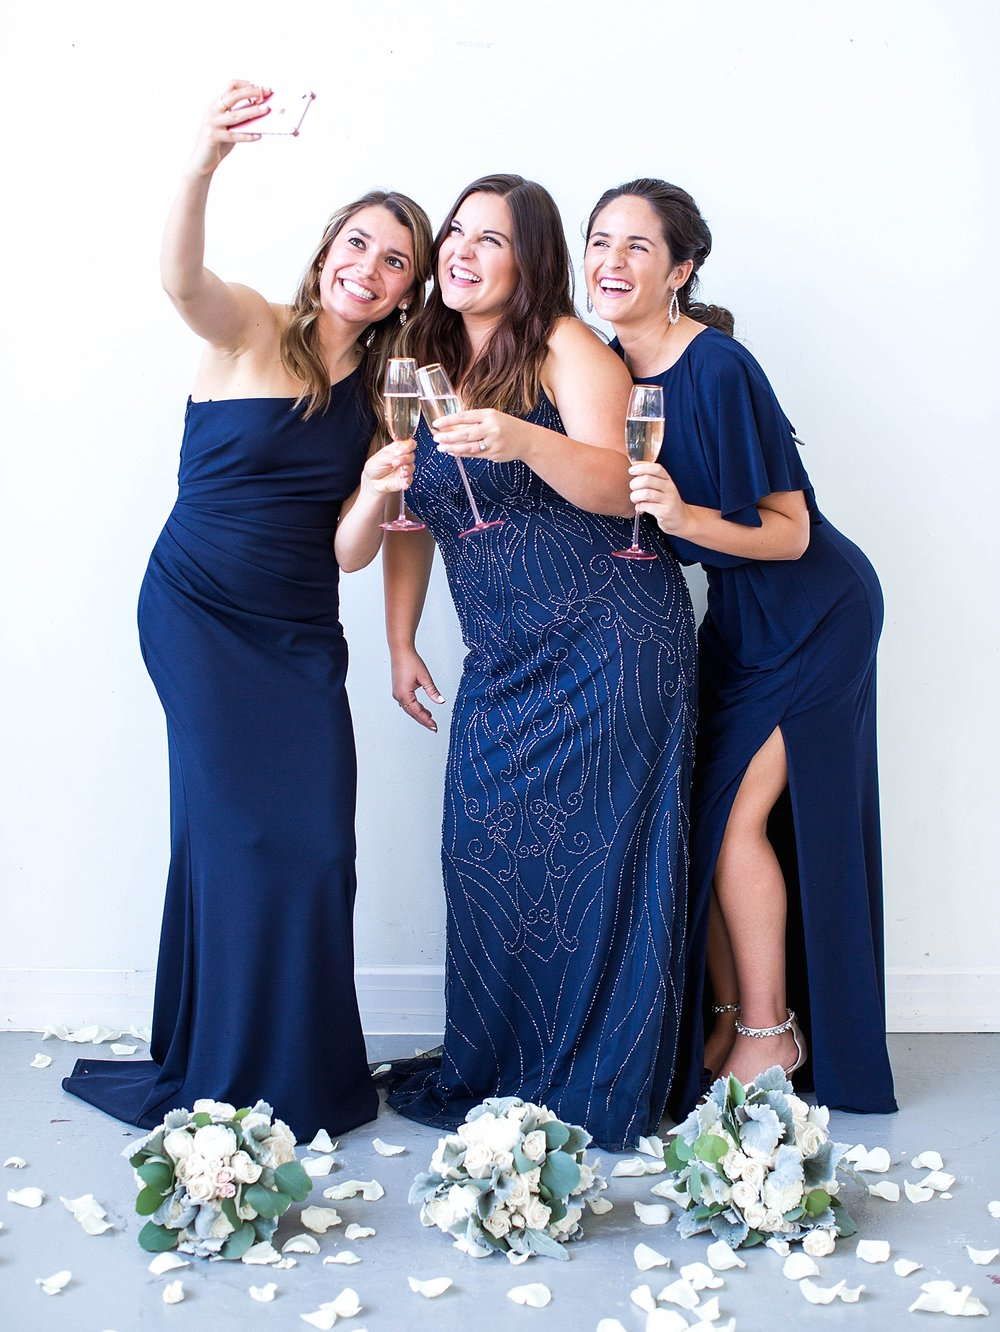 BHLDN Bridesmaids Dresses Campaign Philadelphia New Jersey Wedding Fashion Photography by Kelee Bovelle_0022.jpg